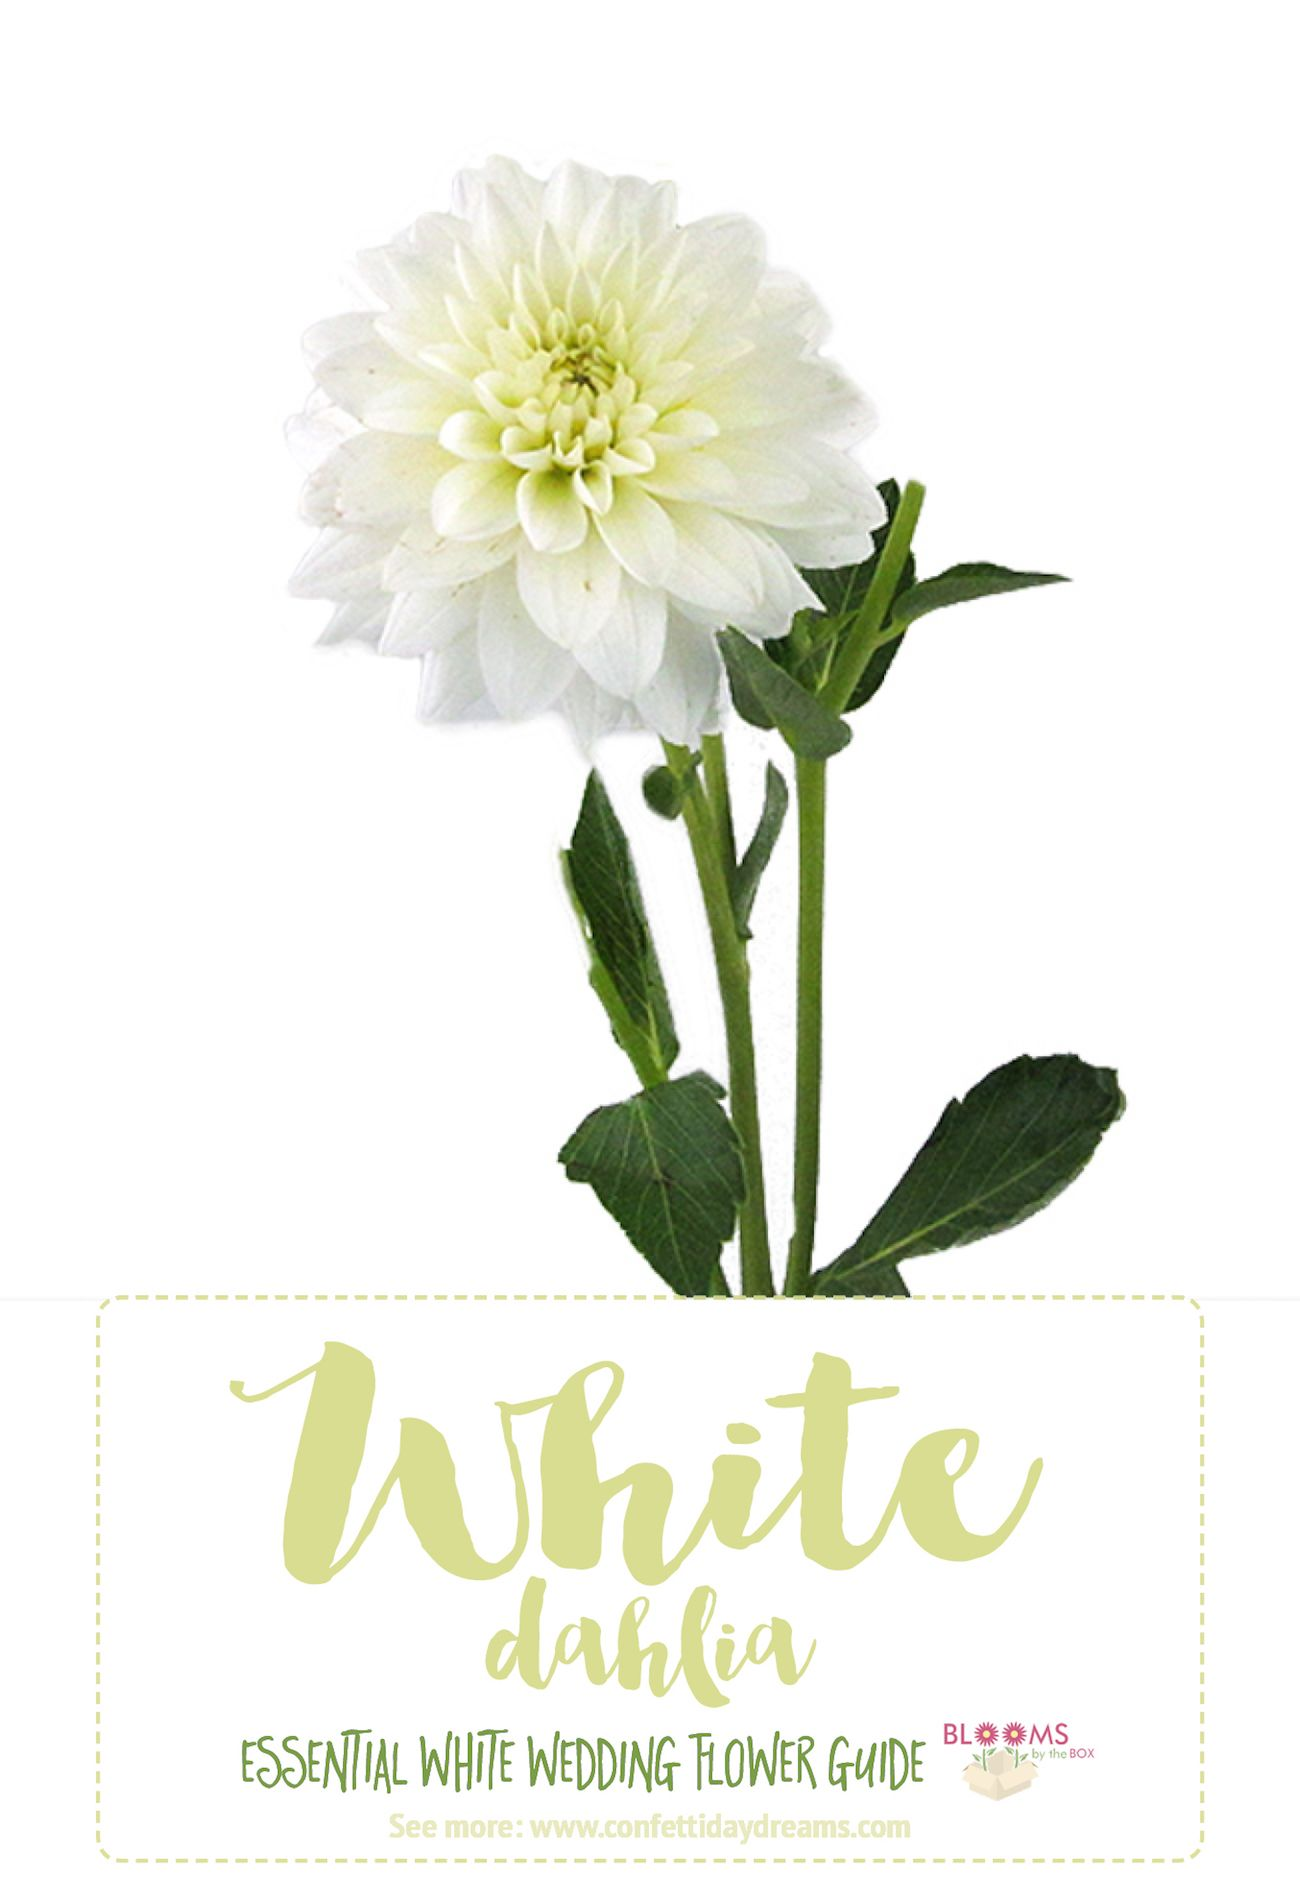 Essential white wedding flower guide names types pics types of white flowers httpconfettidaydreamstypes mightylinksfo